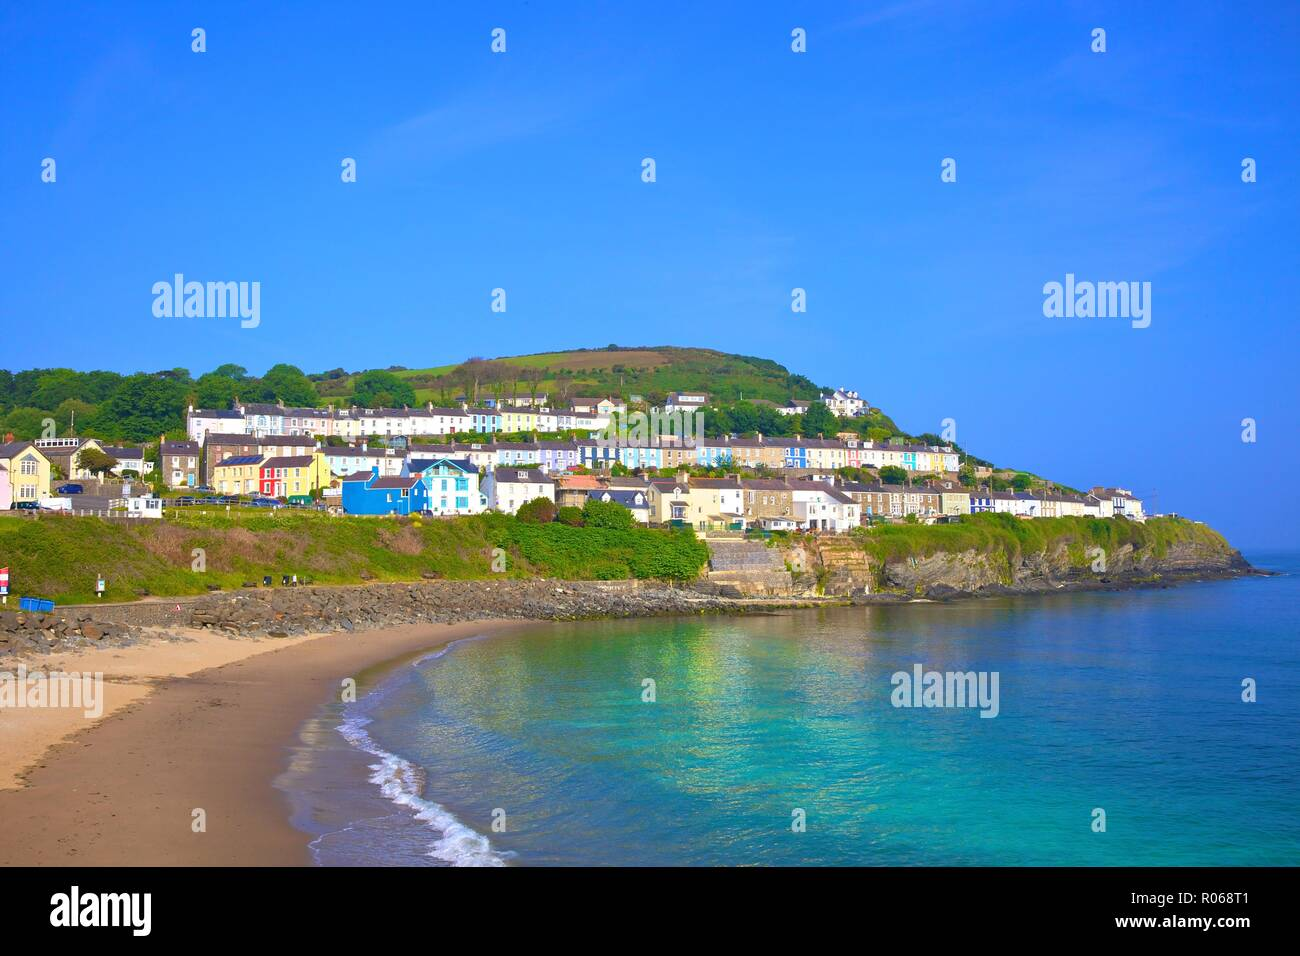 The Beach at New Quay, Cardigan Bay, Wales, United Kingdom, Europe - Stock Image